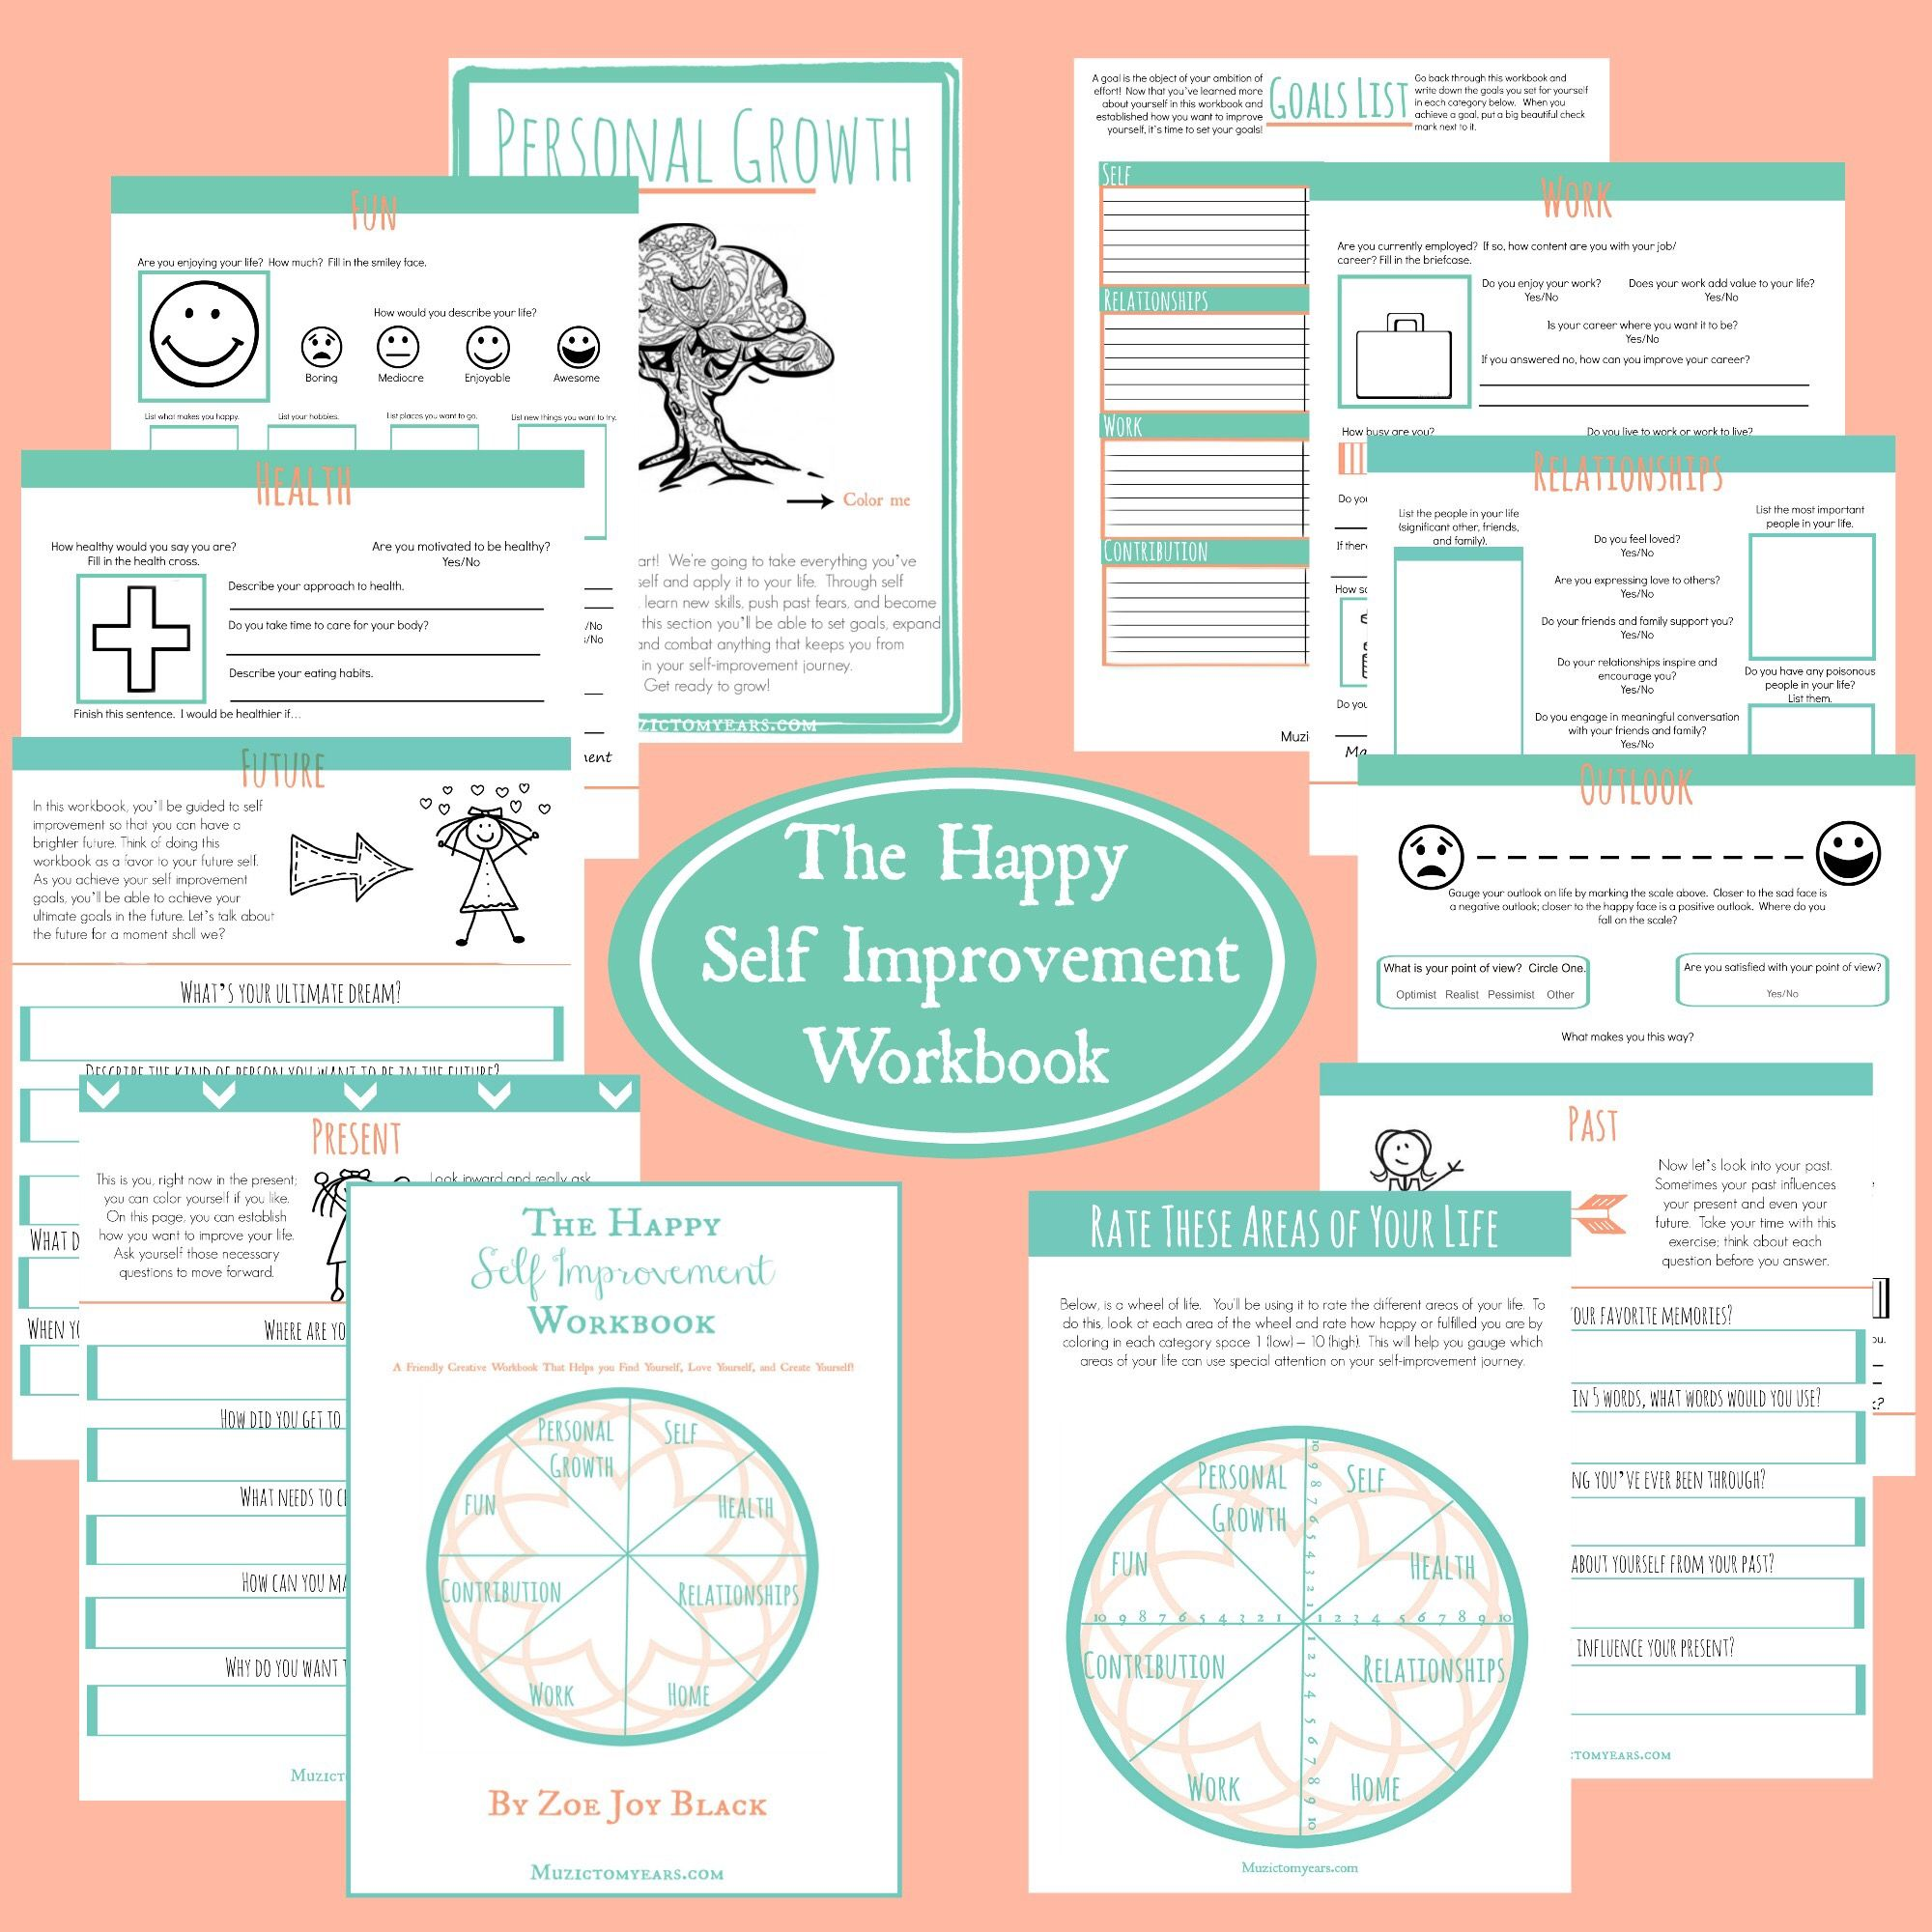 The Happy Self Improvement Workbook